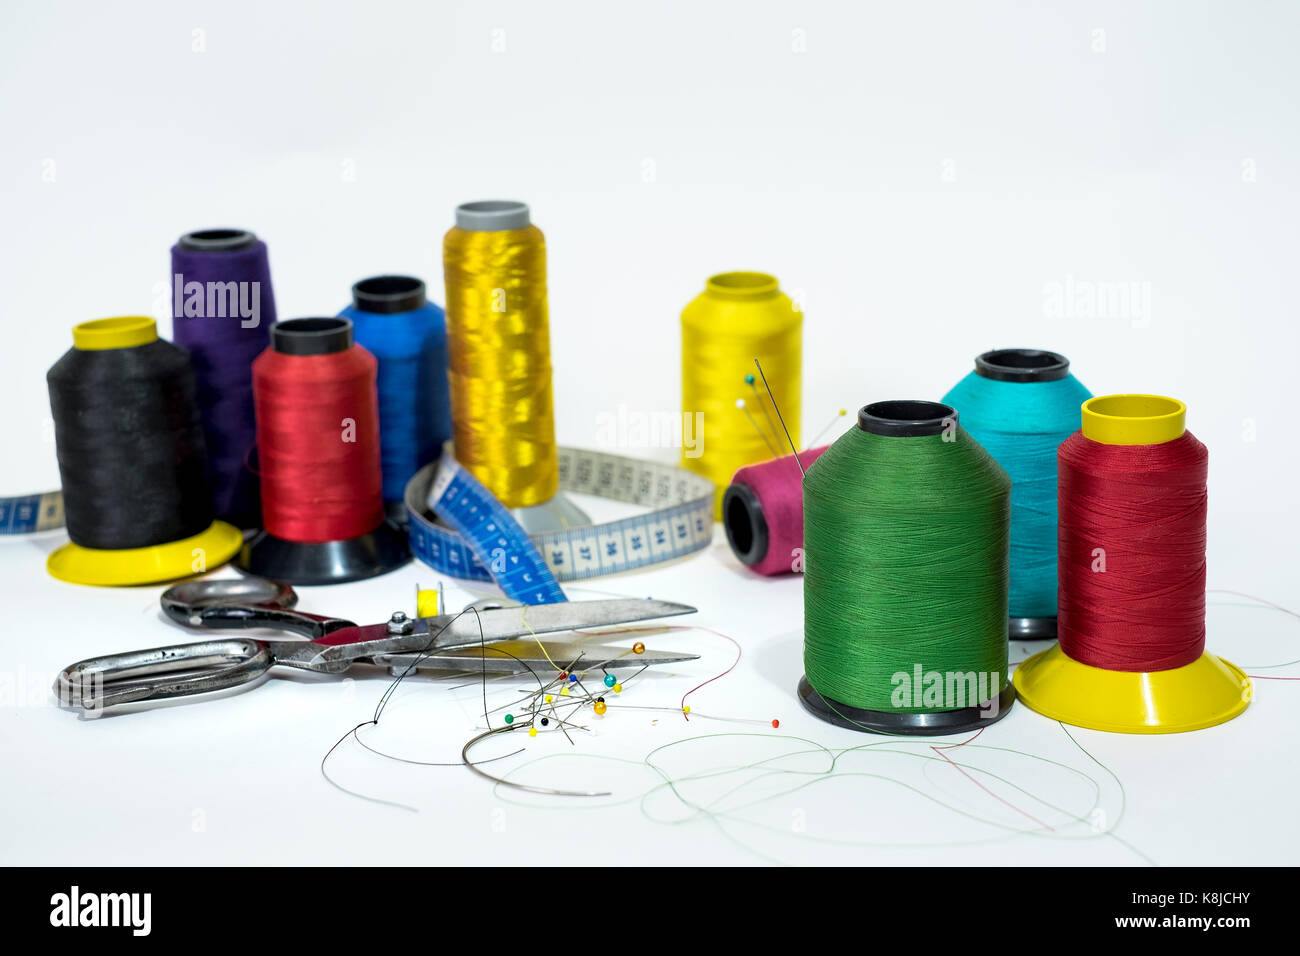 line reels, scissors, metric tape, pin and needles, some of the many necessary tools  for the art of sewing that - Stock Image